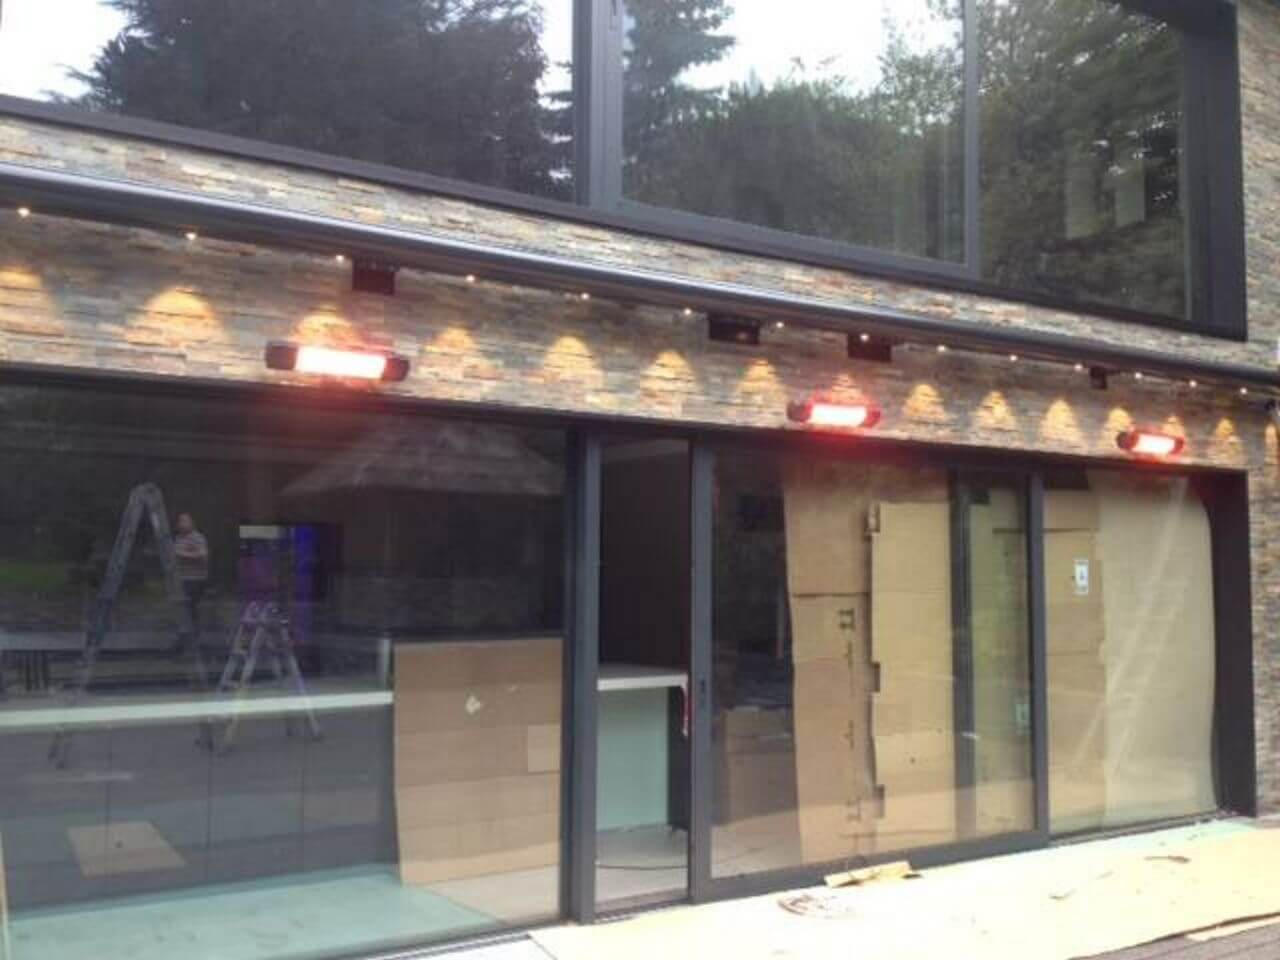 Weinor opal design awning with LED lighting over bifold doors and patio